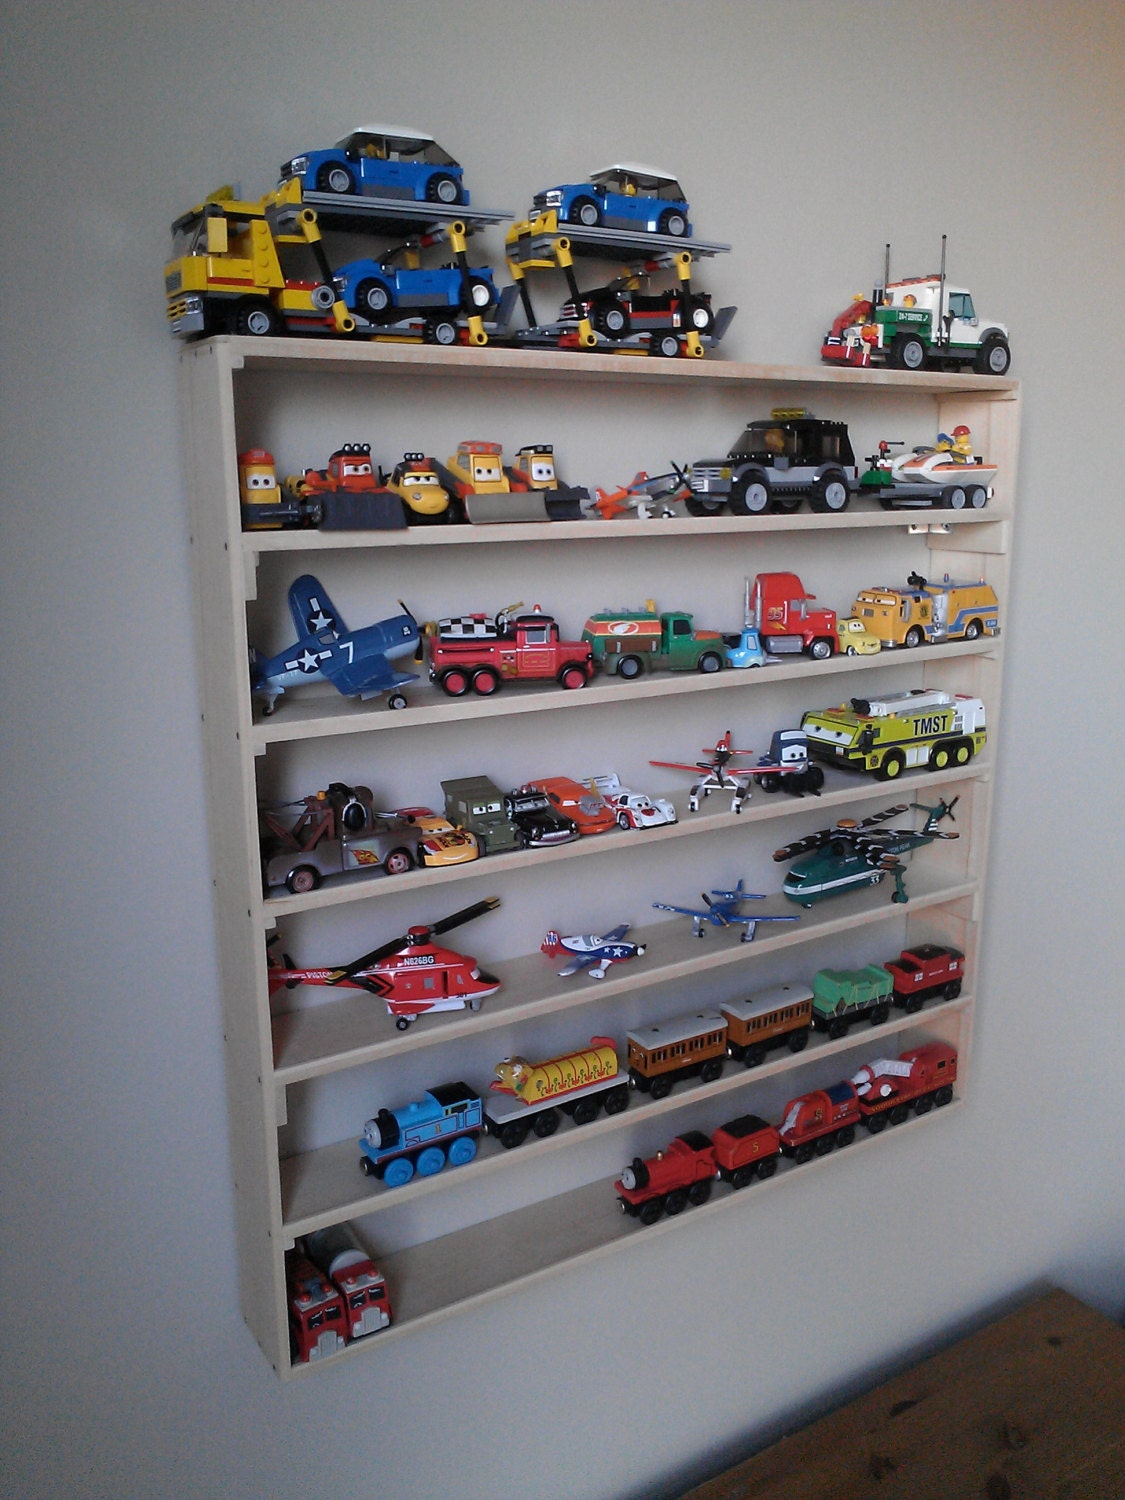 Lego Wall Display Rack, Toy Storage, Minifigures, Boy Room Decor, Storage At